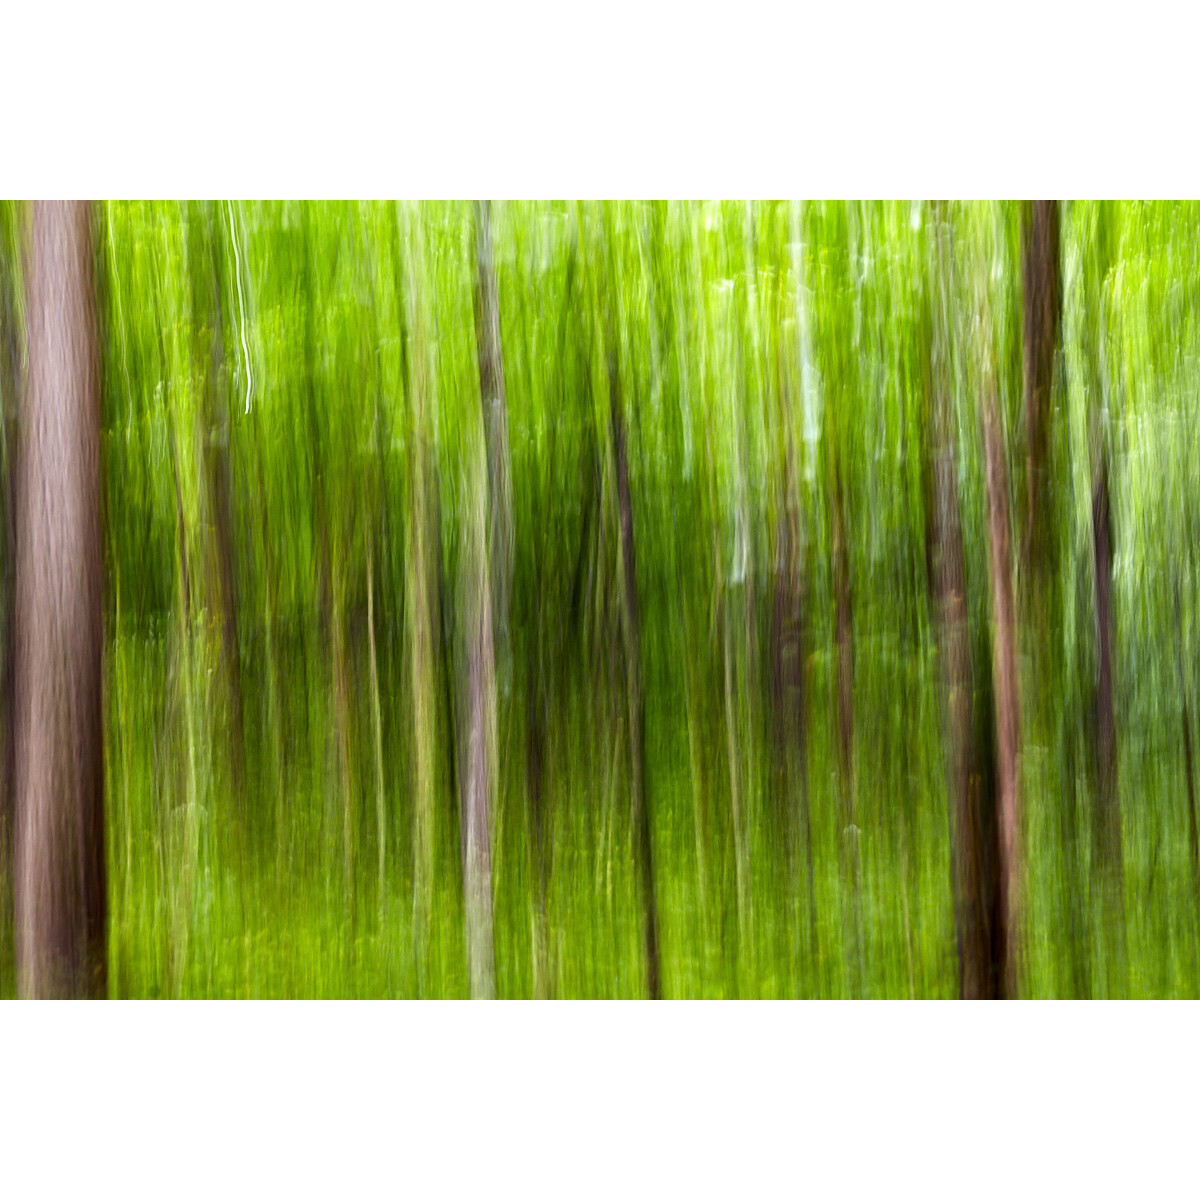 Untitled (Summer Woods)